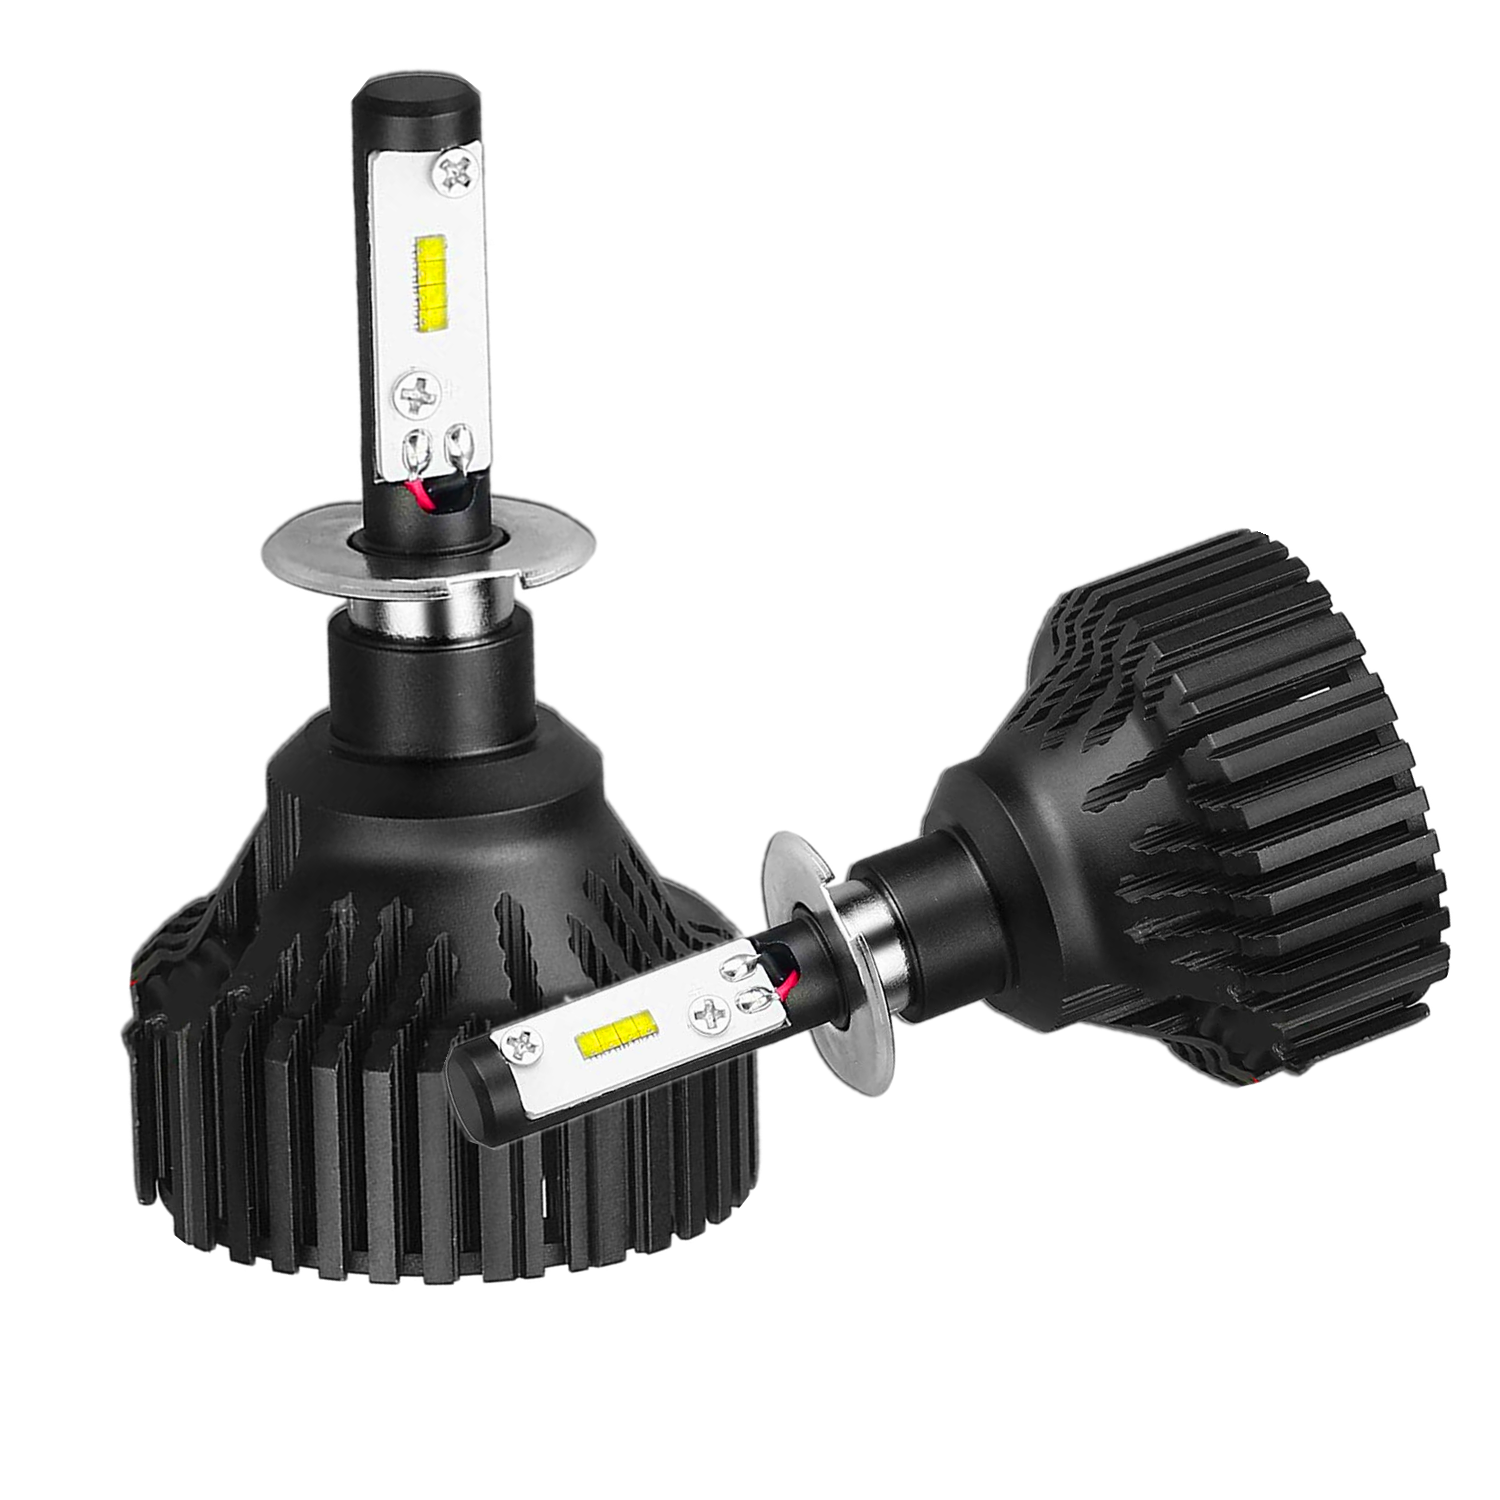 Xtreme Super Bright Lightning H3 LED Fog Lights Bulb Replacement